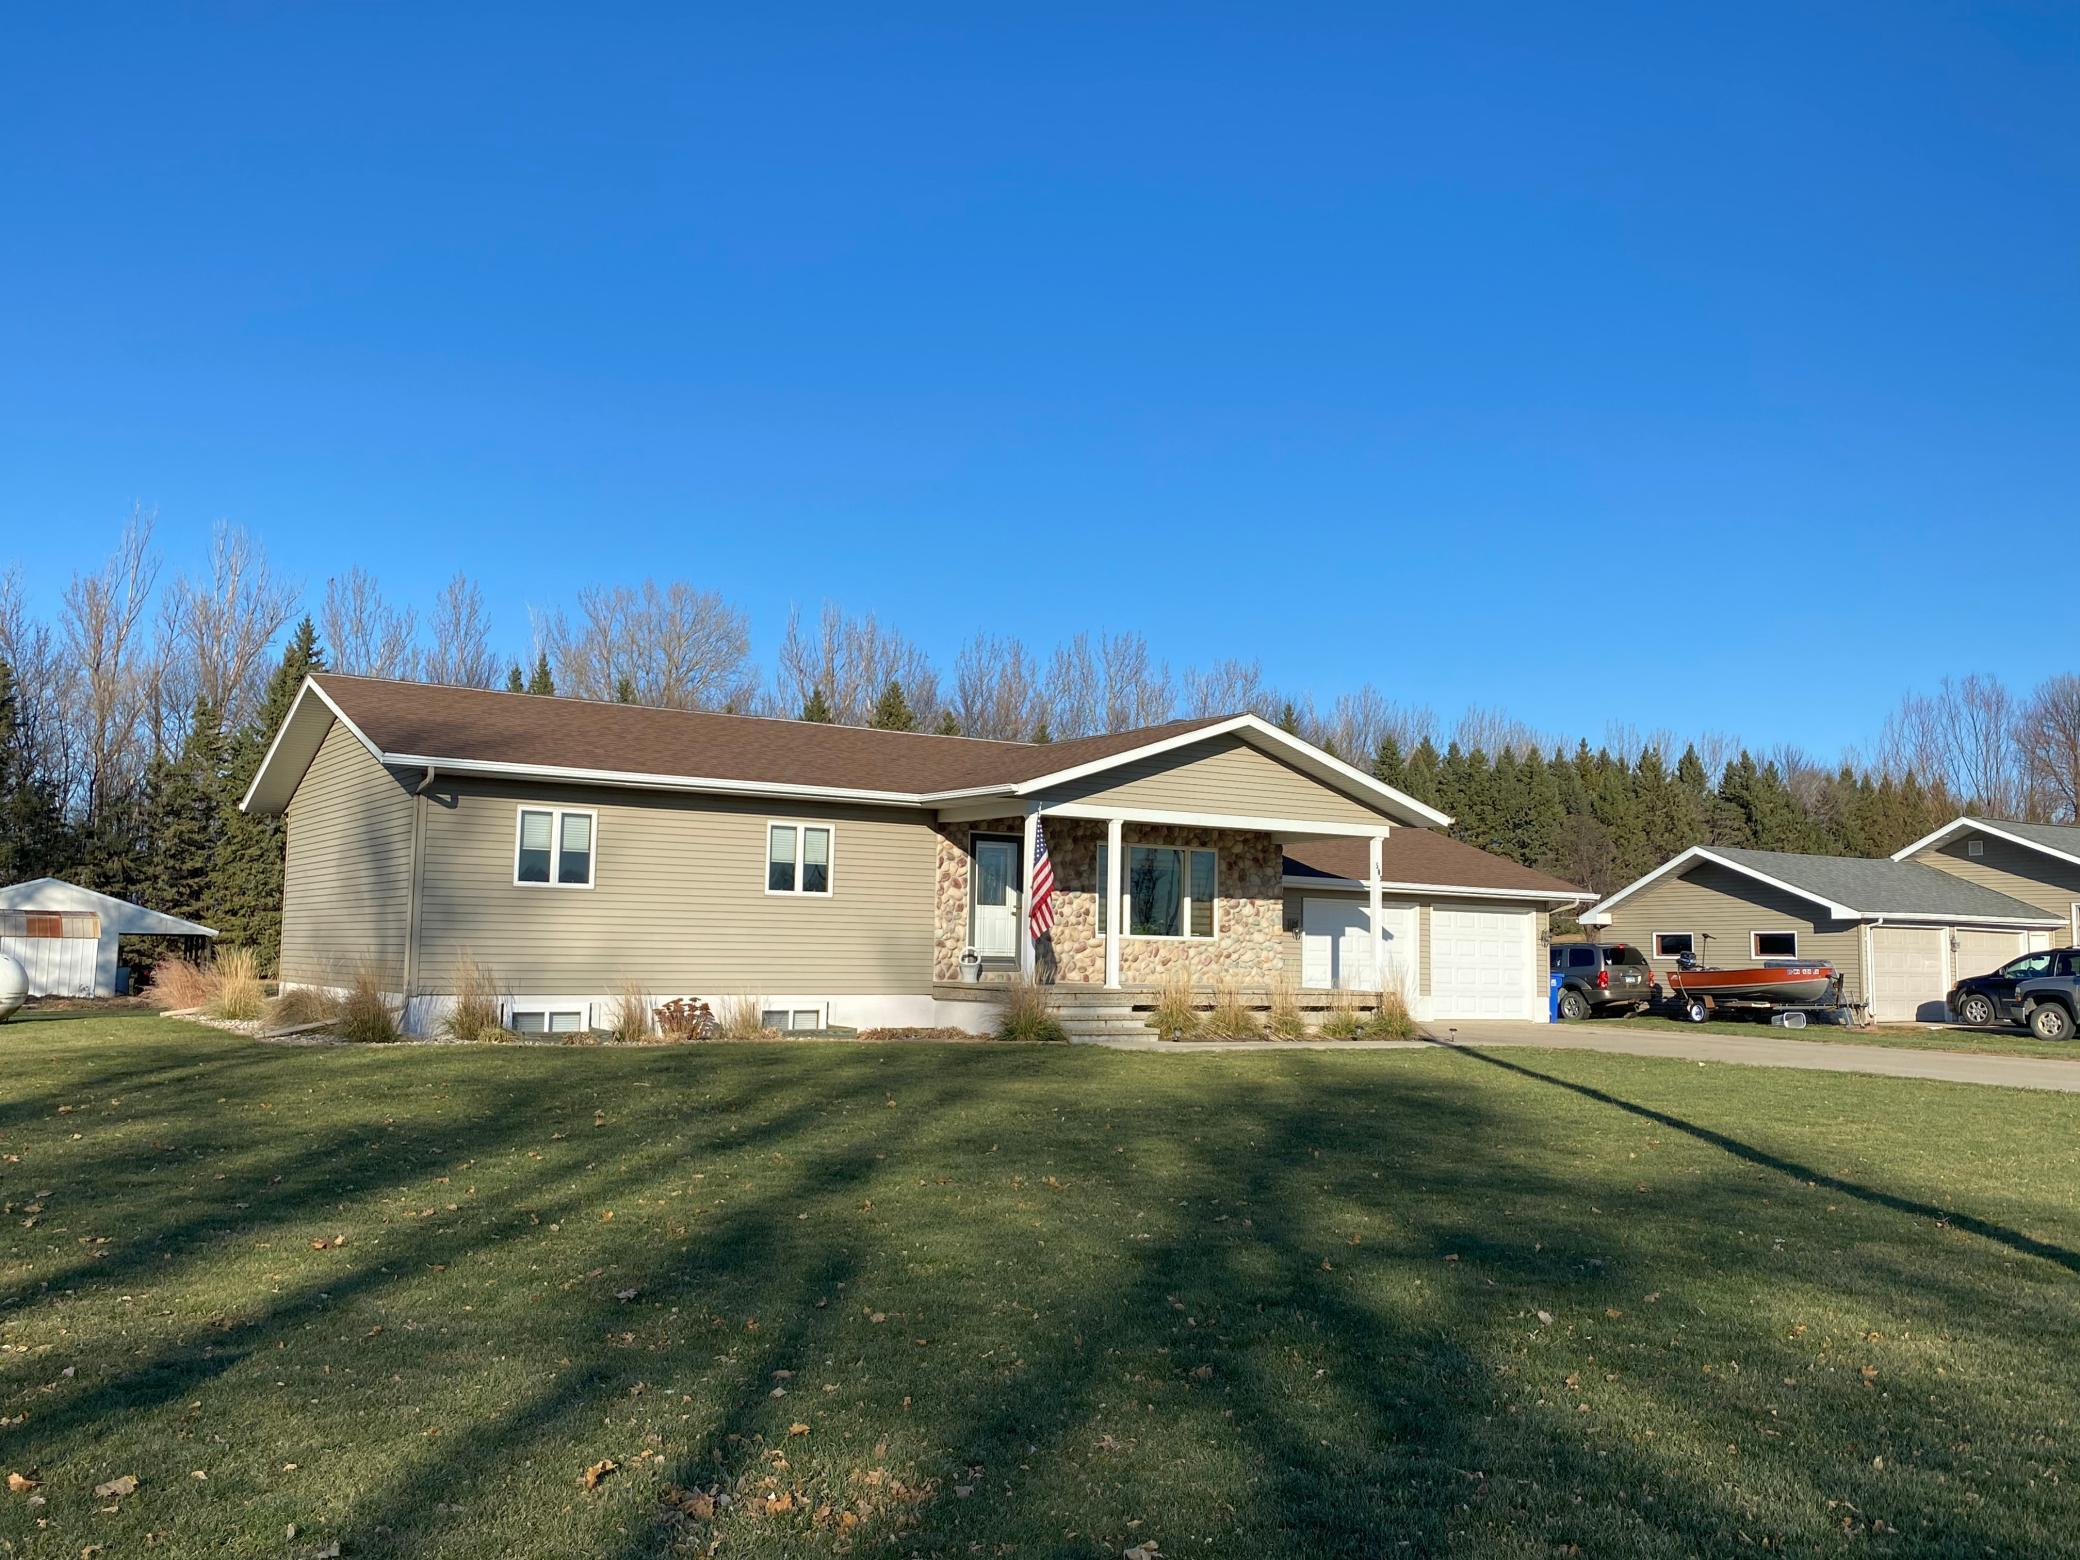 503 1st Street Property Photo - Bellingham, MN real estate listing